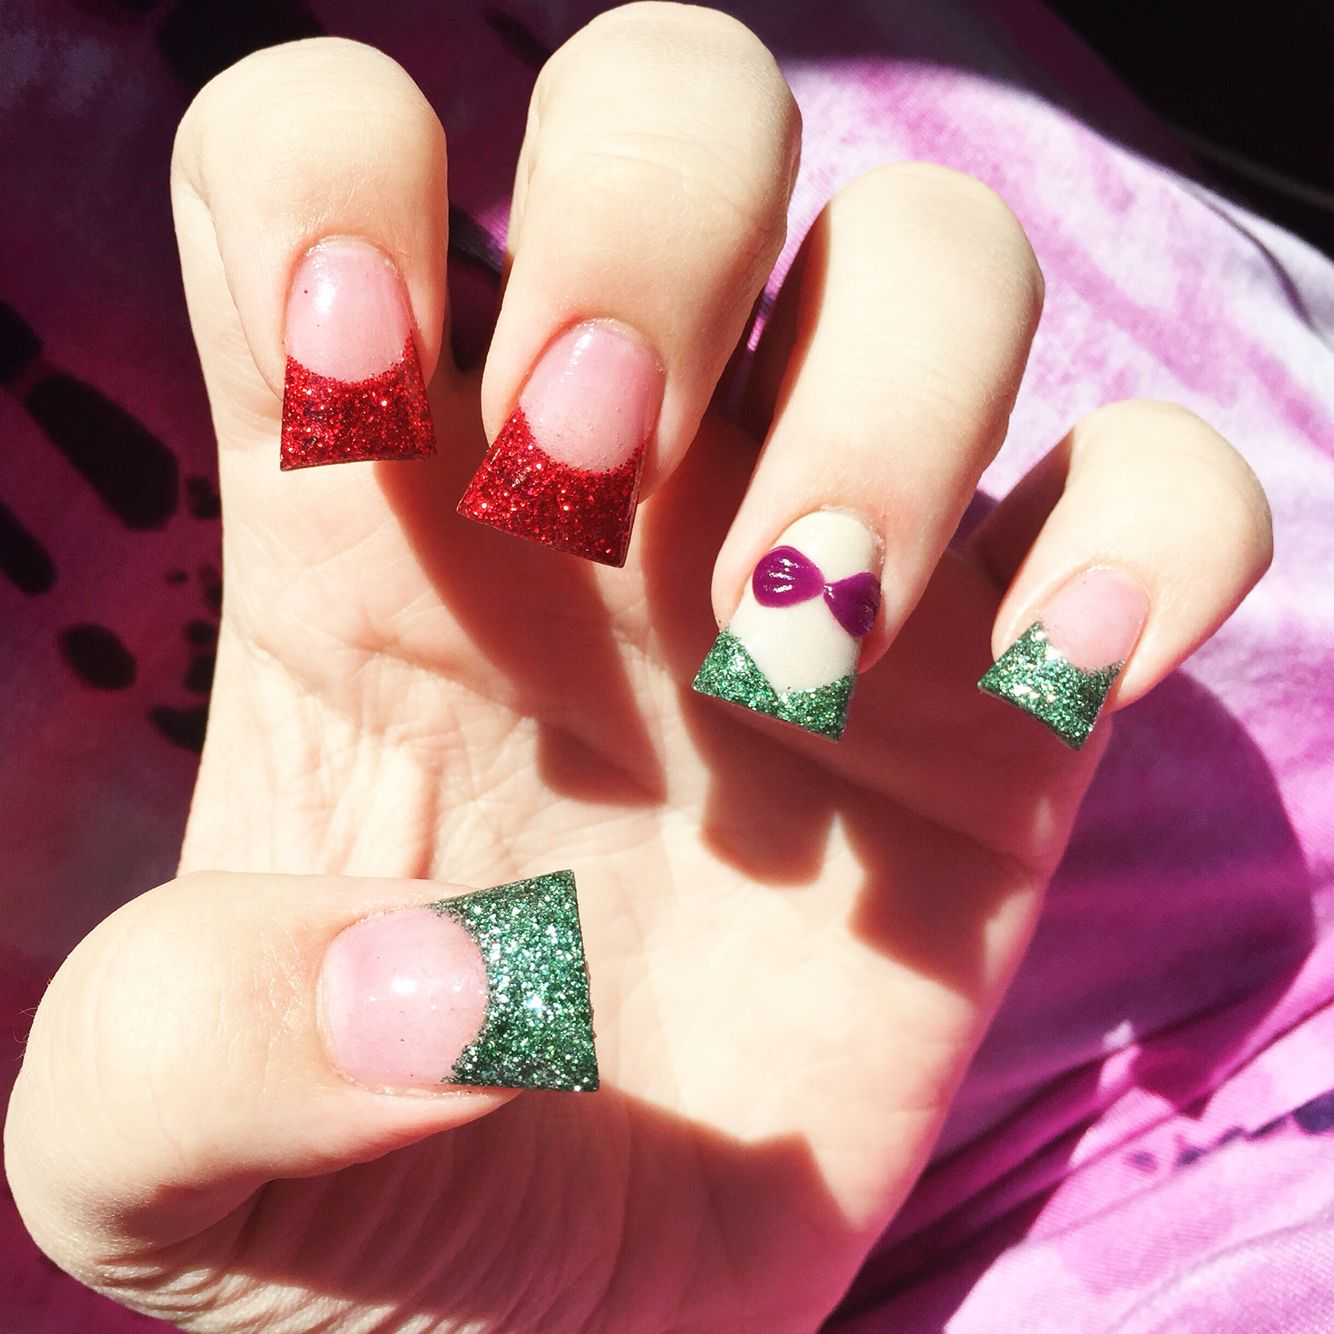 Disney little mermaid inspired nails. French Tip Acrylic manicure ...